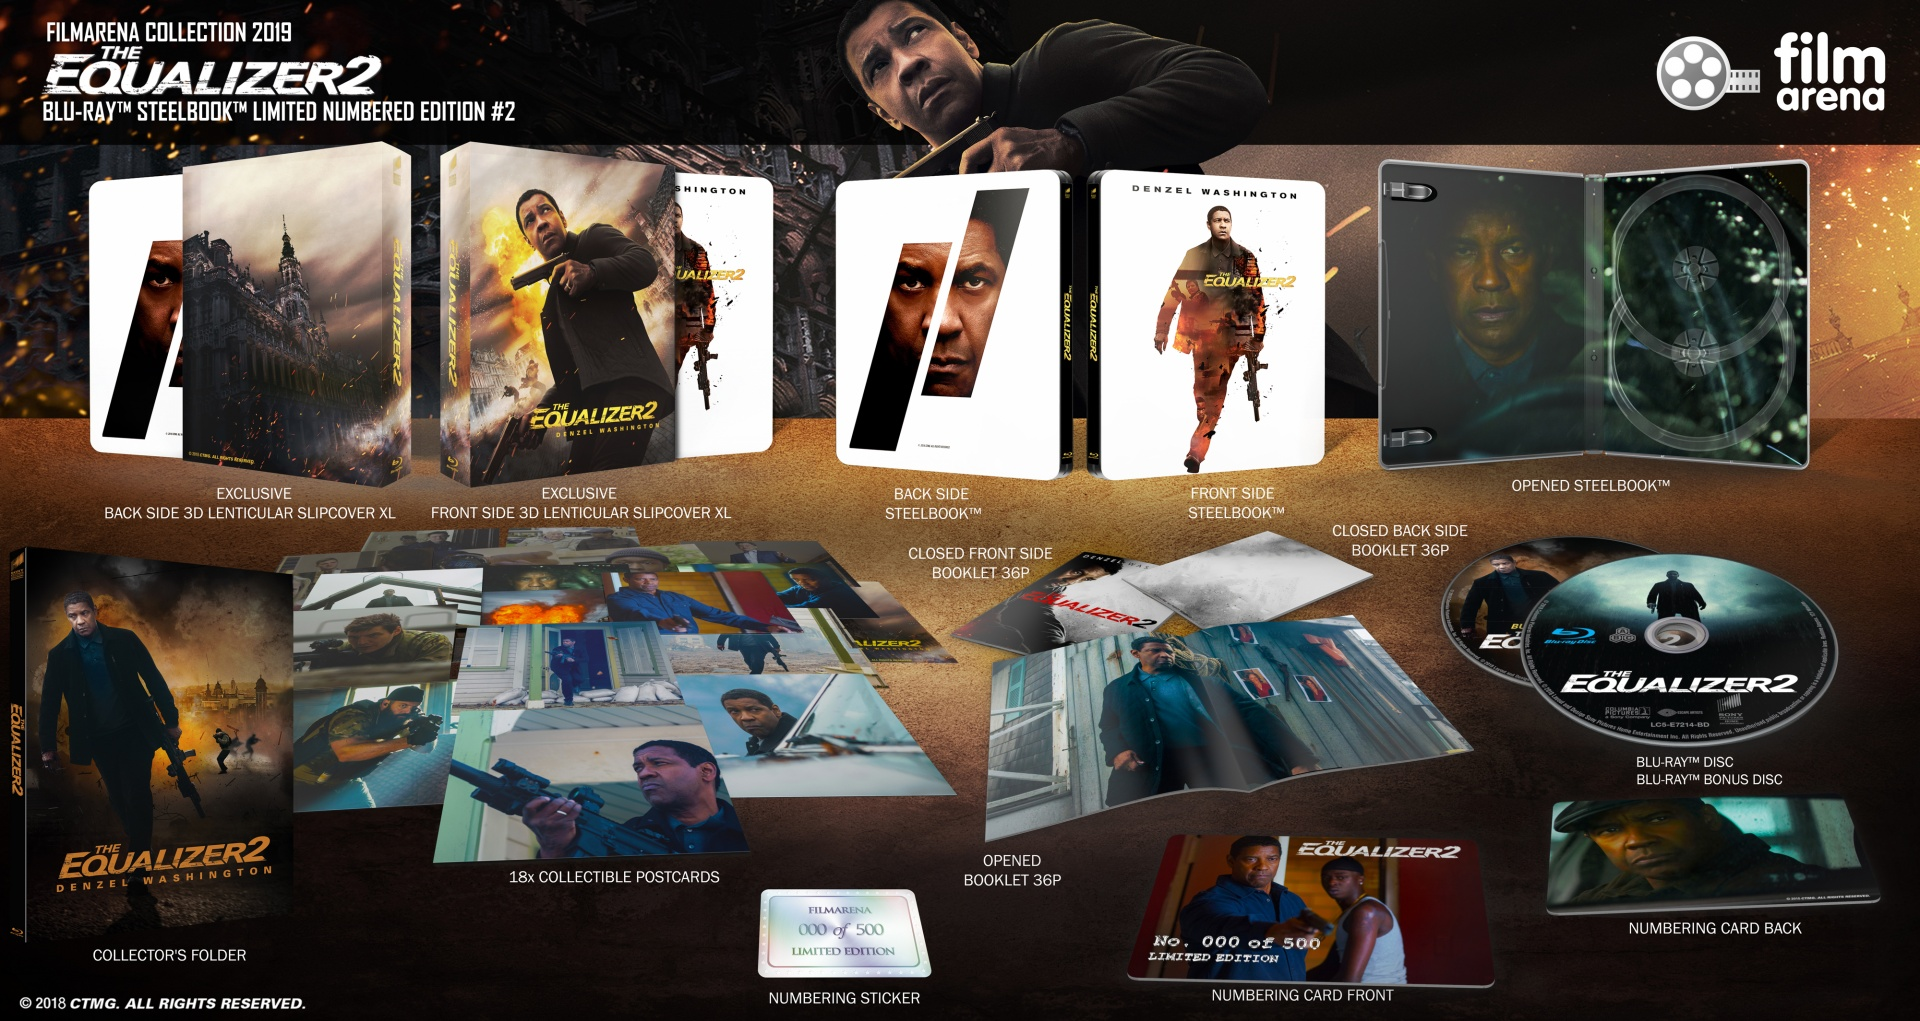 FAC 111 - The Equalizer 2 - Edition 2 - Double Side XL Lenticularslip  Steelbook 2D